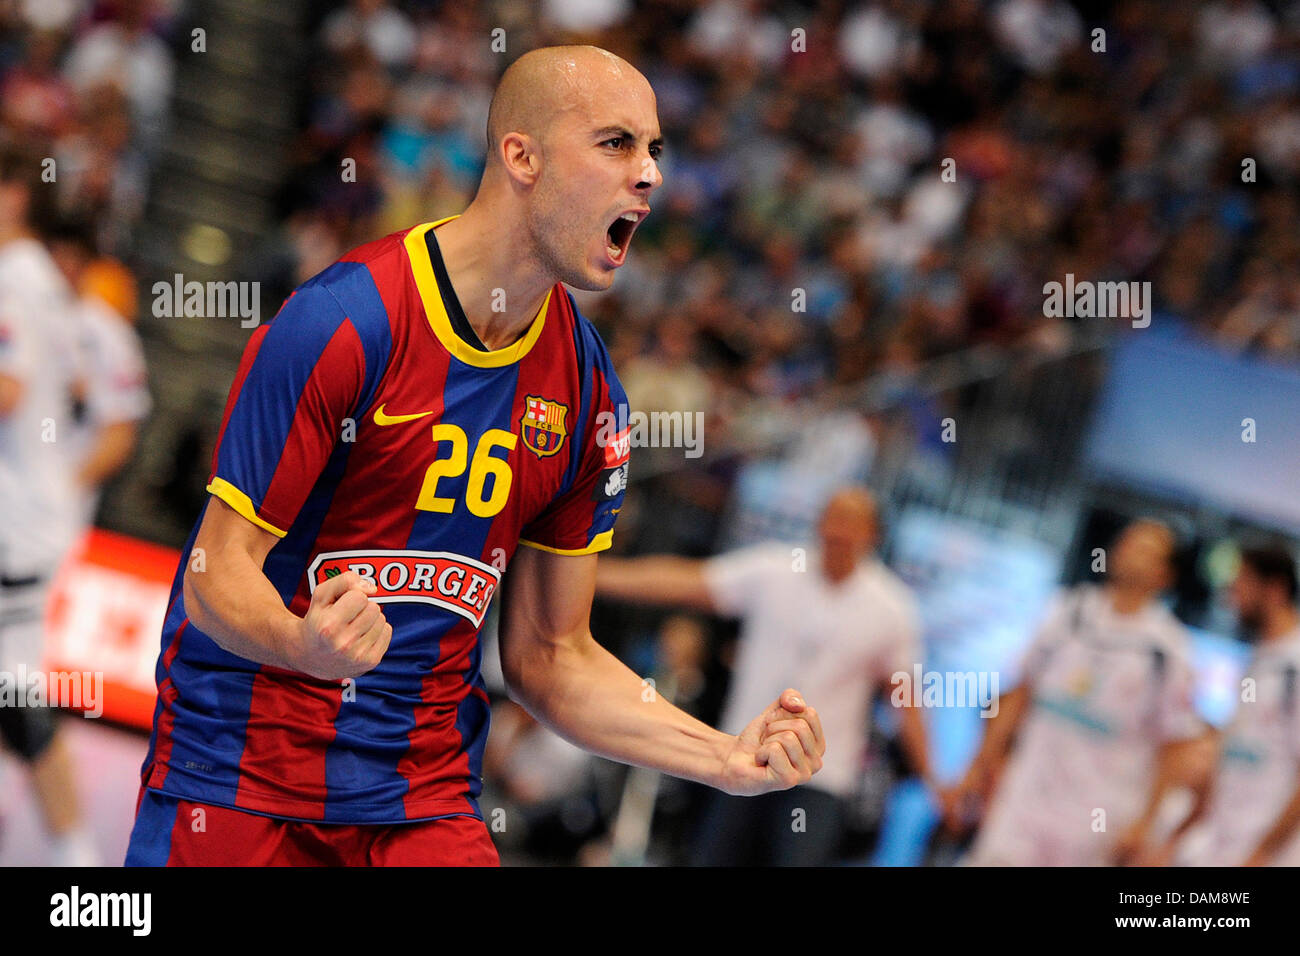 Barcelona's Albert Rocas Comas celebrates in the handball Champions League final match FC Barcelona Borges vs. - Stock Image